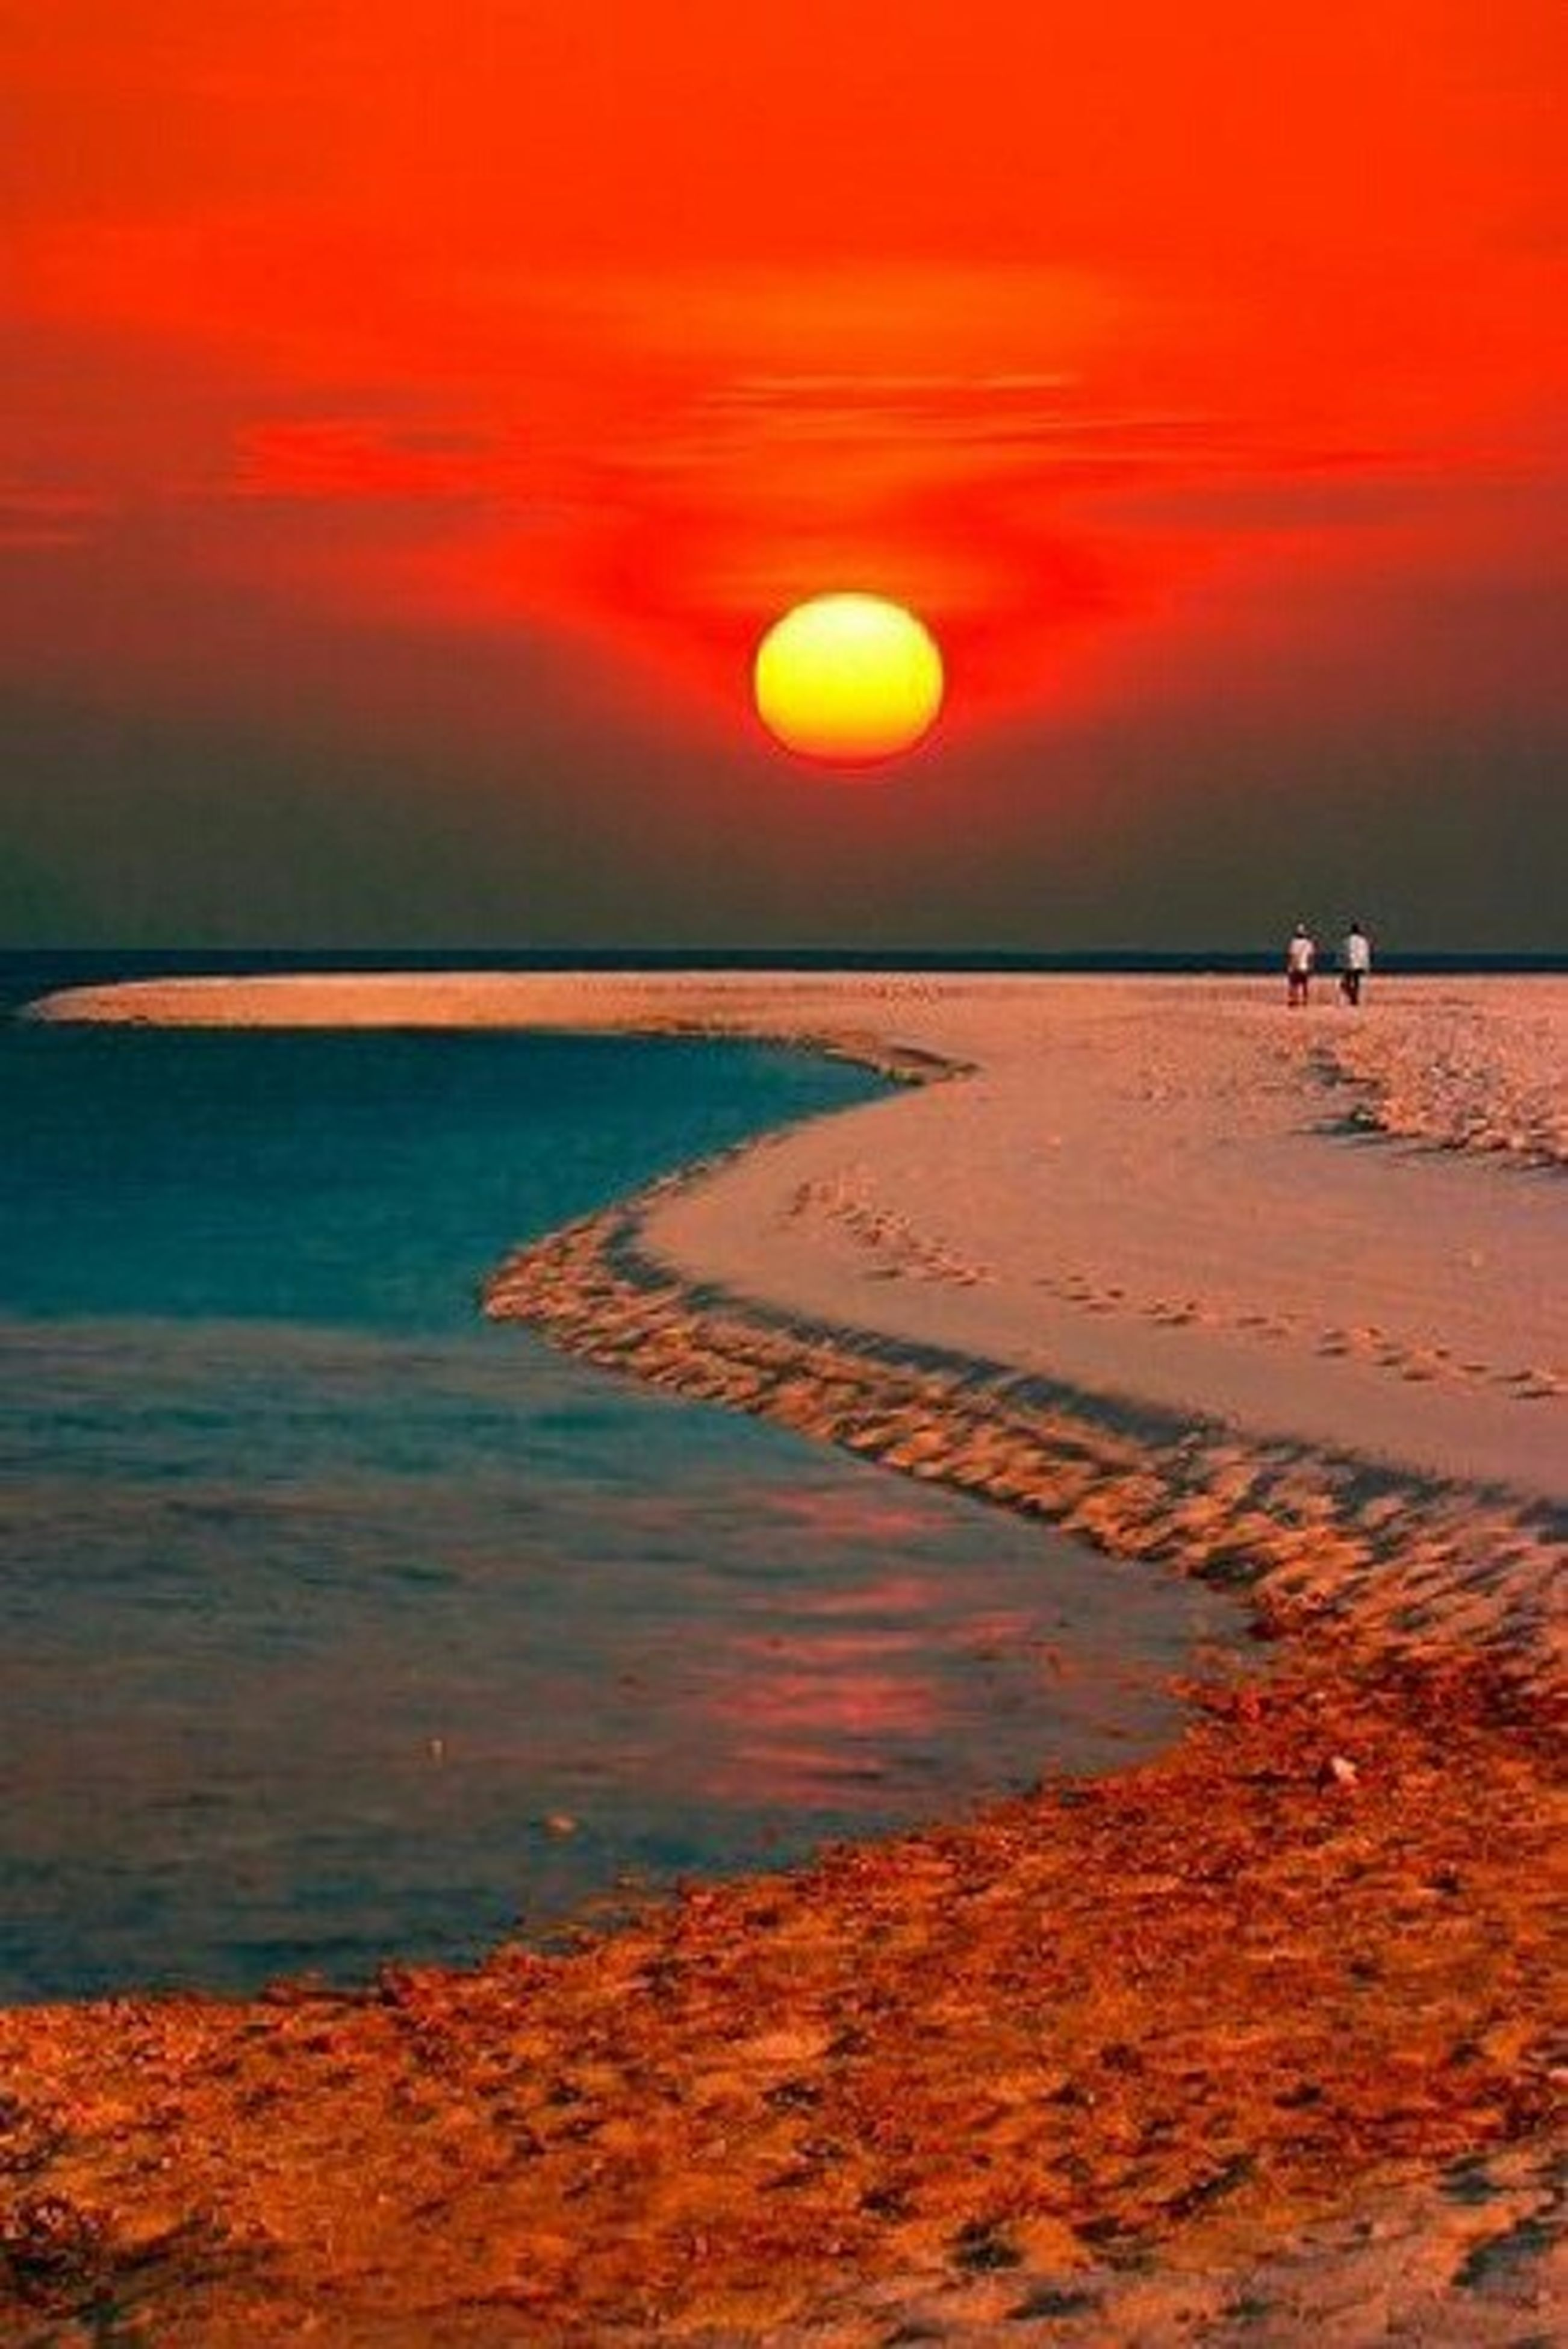 sunset, sea, orange color, water, beach, scenics, horizon over water, tranquil scene, beauty in nature, sky, sun, tranquility, idyllic, shore, nature, sand, silhouette, reflection, wave, vacations